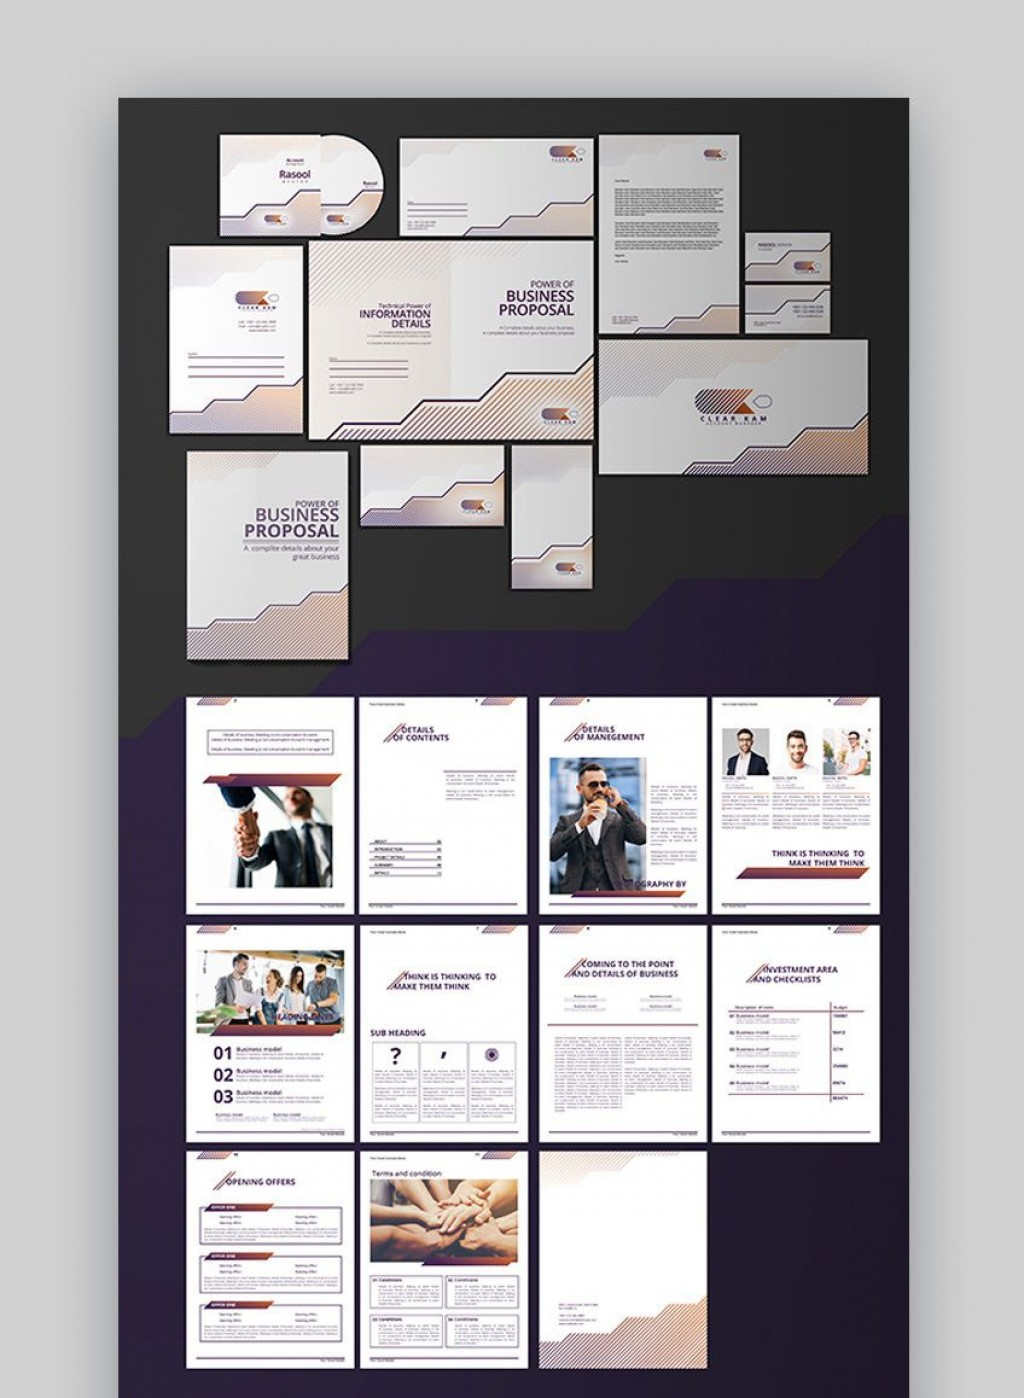 002 Beautiful Graphic Design Proposal Template Word Photo Large